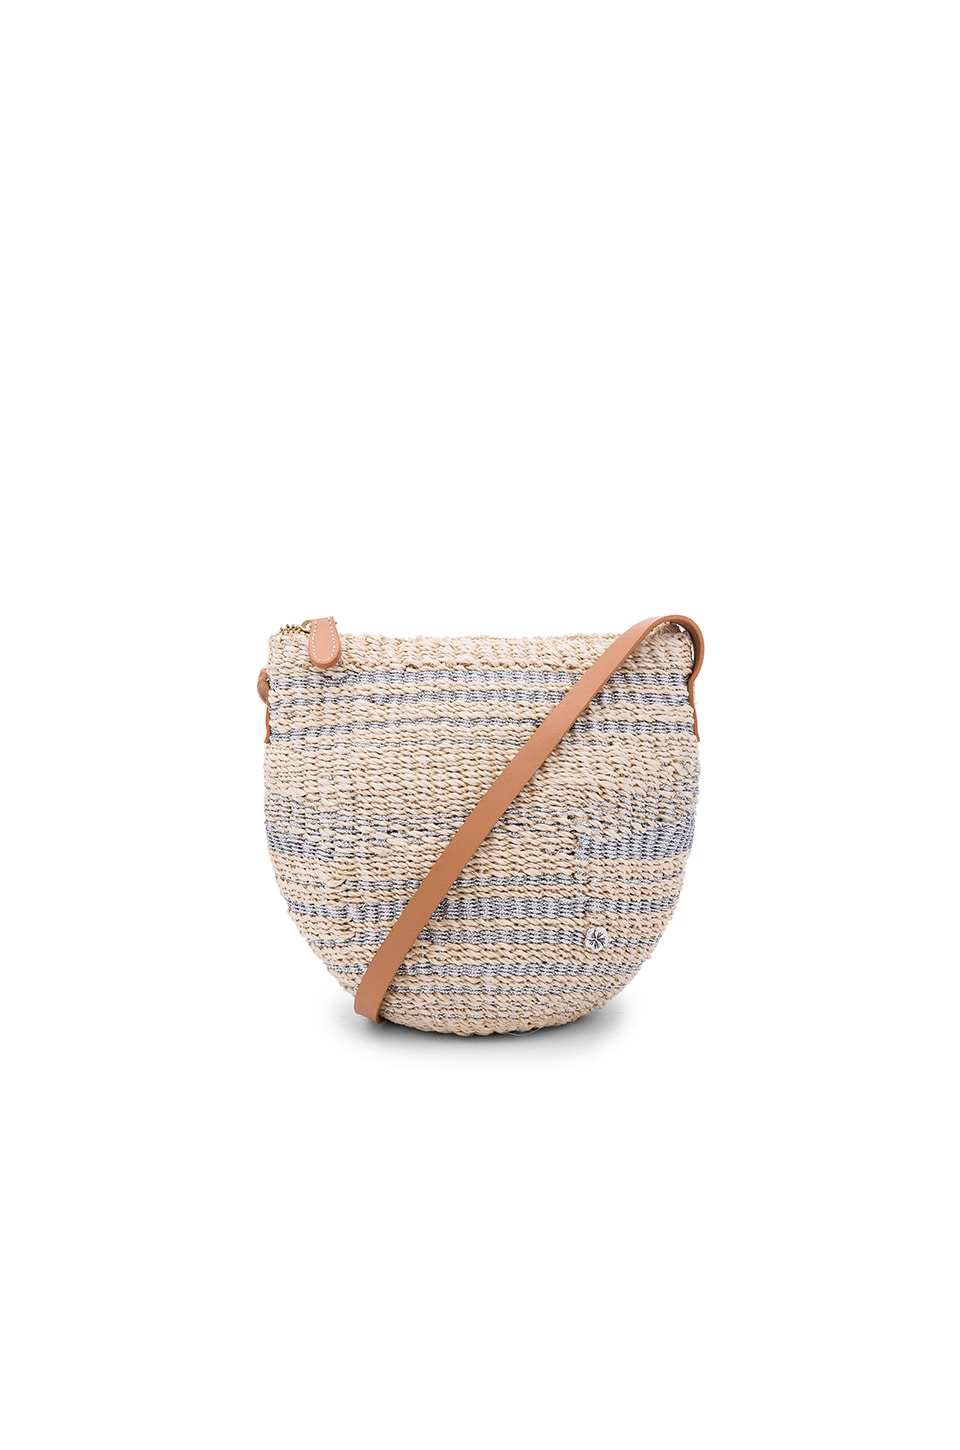 florabella Torcello Crossbody in Bleached & Silver